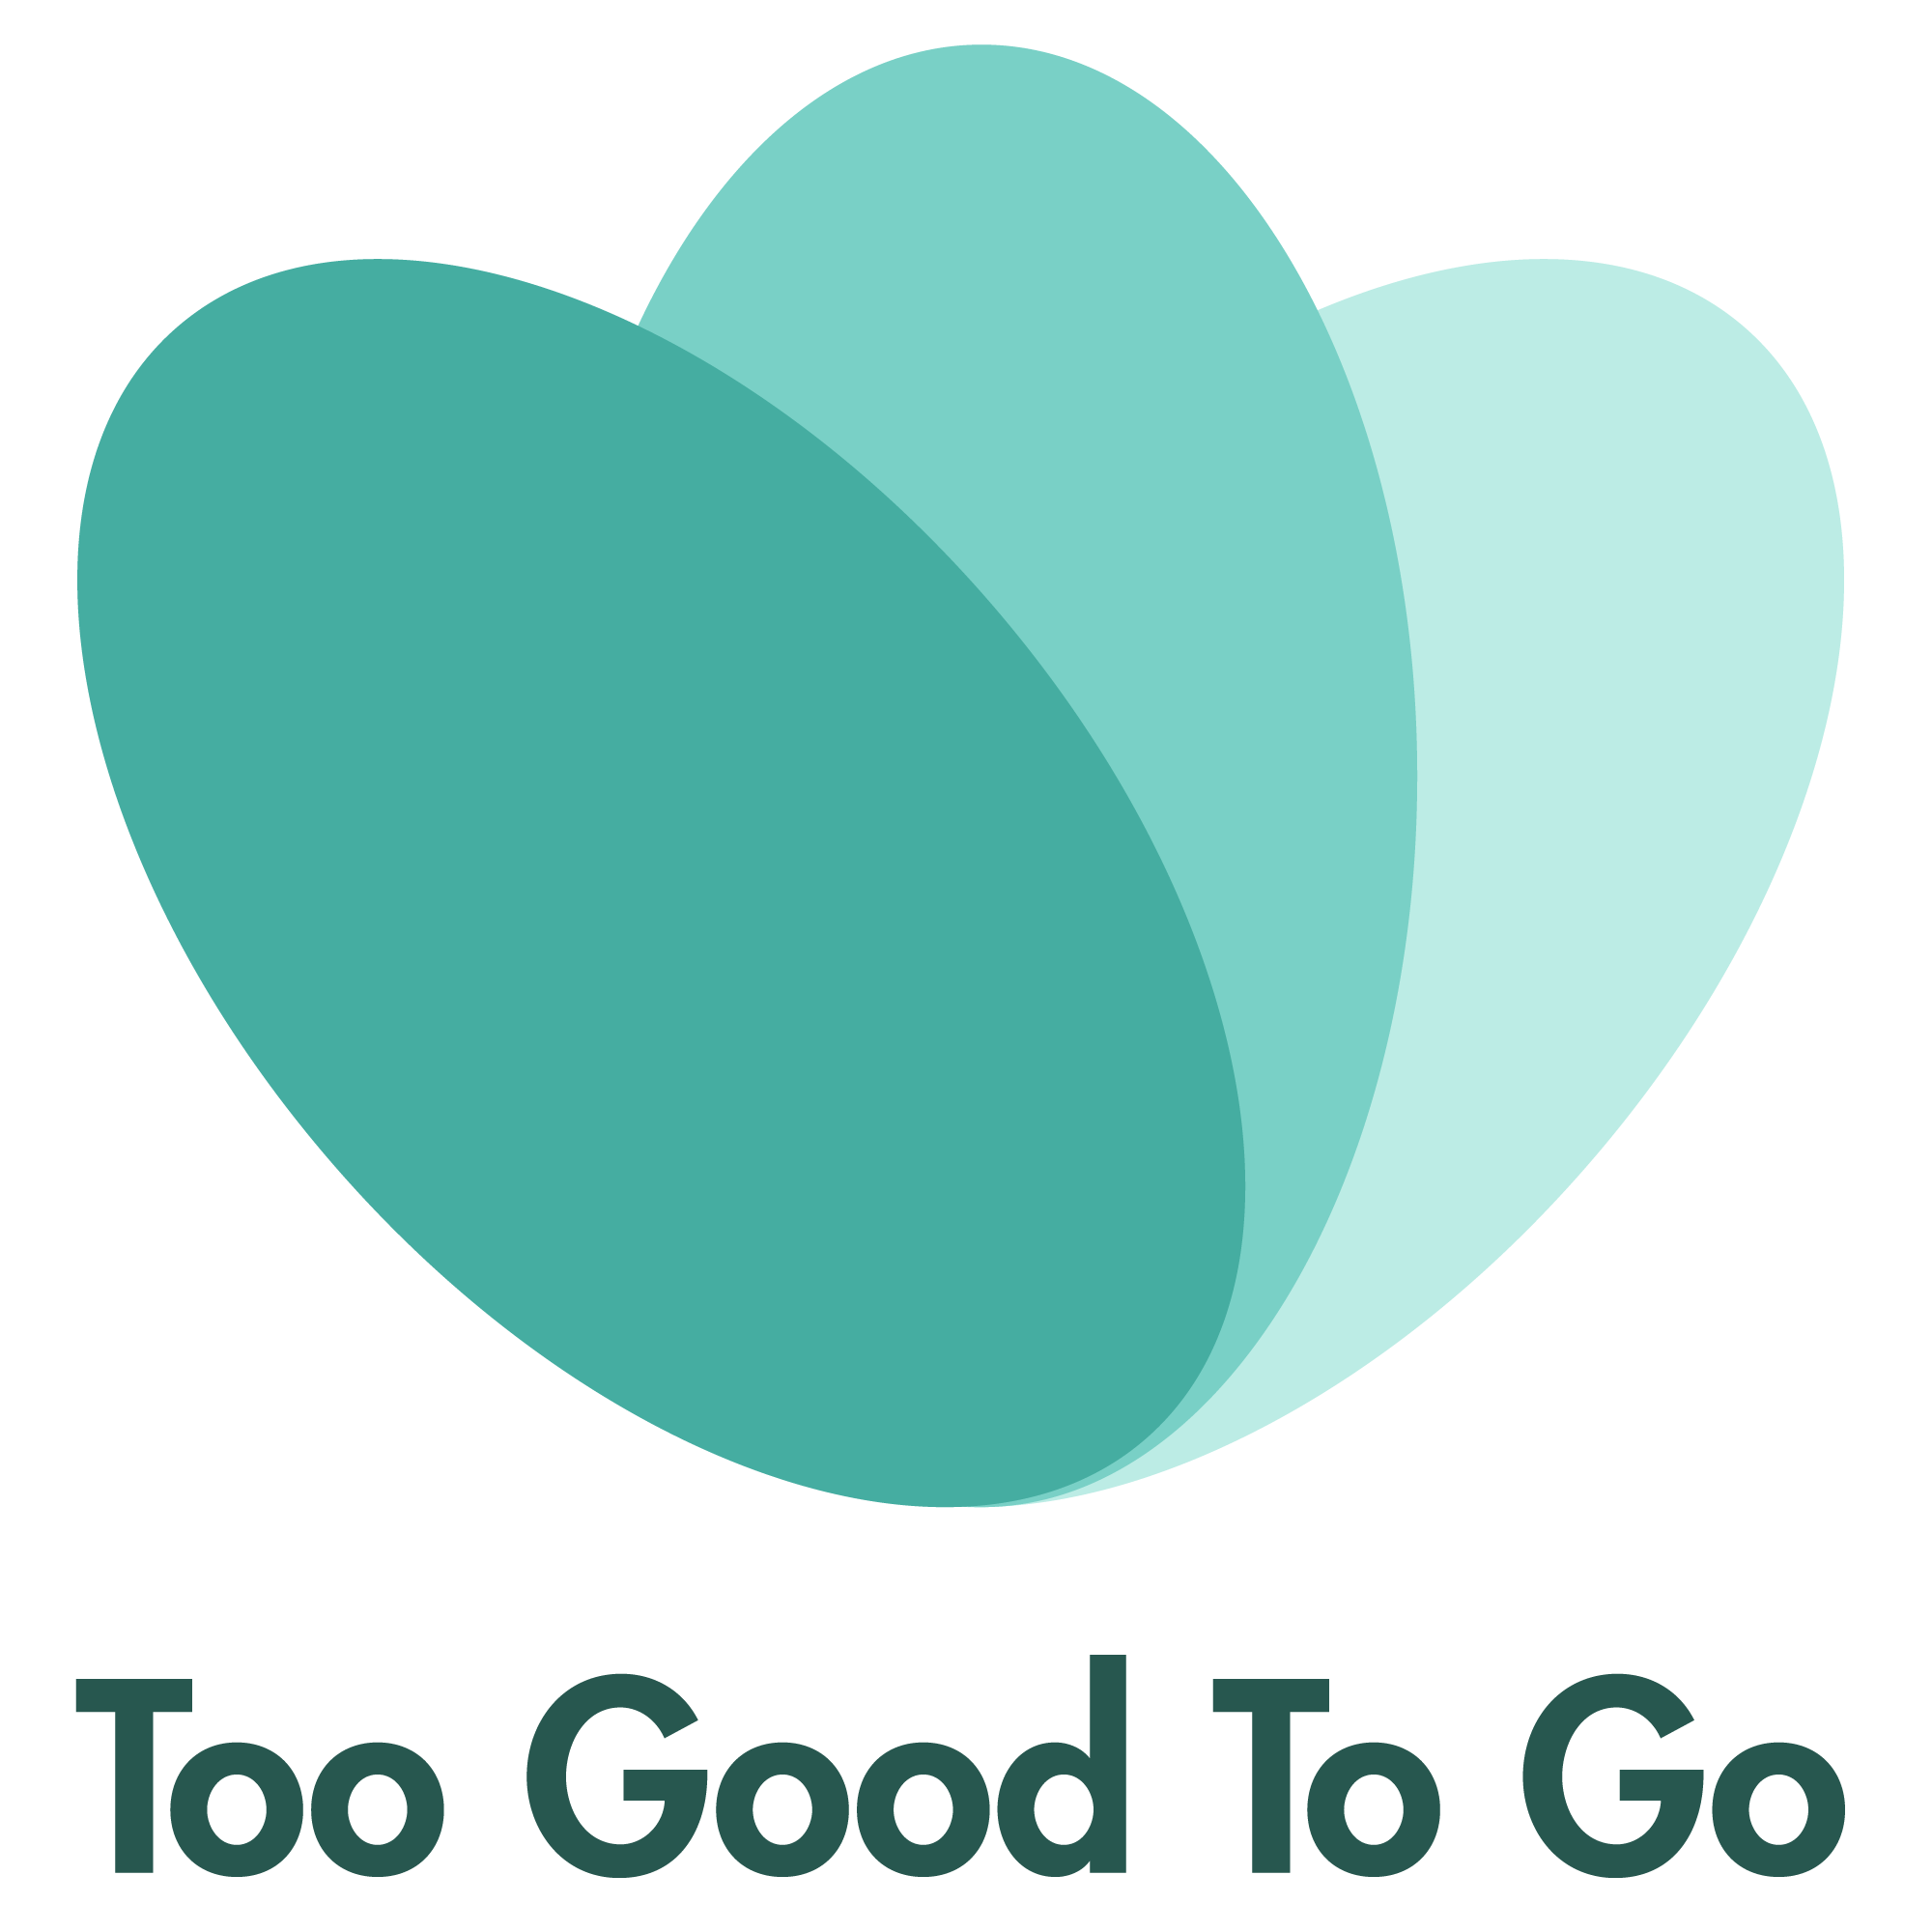 The logo for the app Too Good To Go